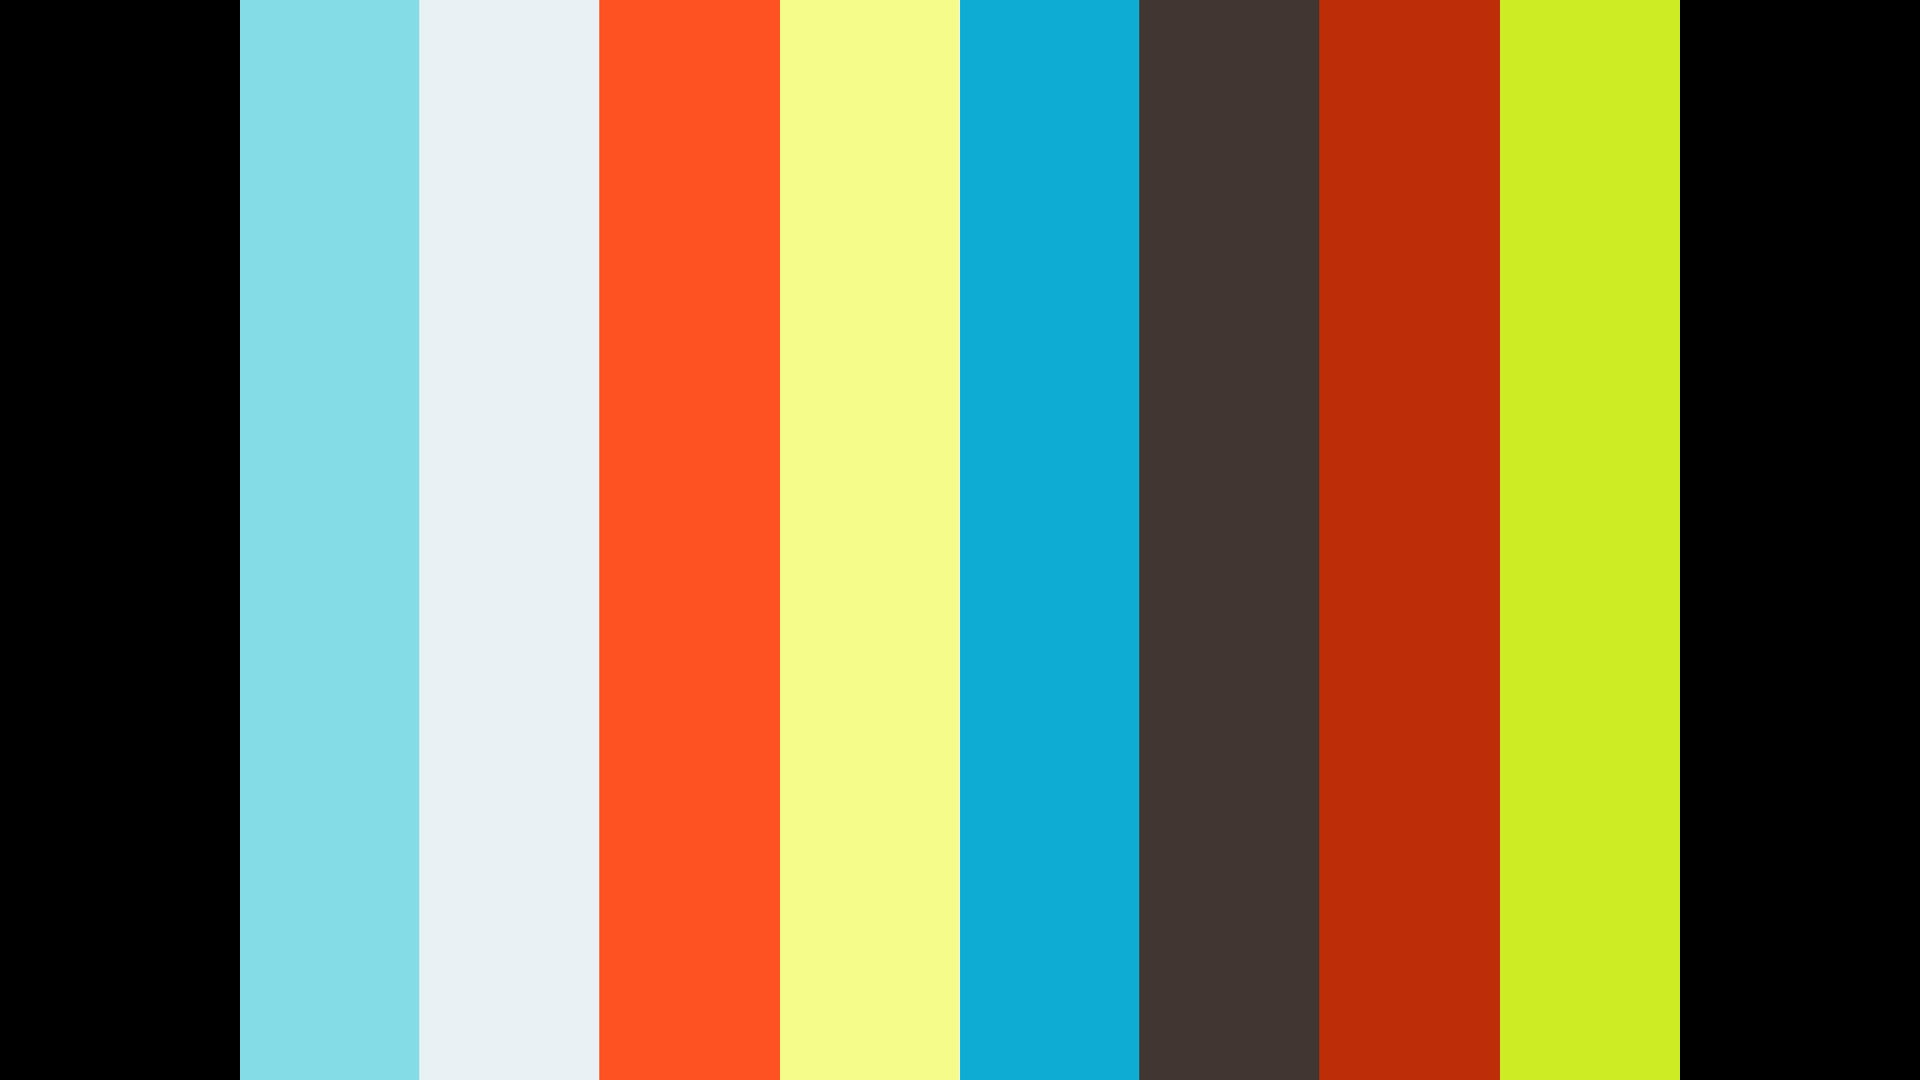 Great short movie called Cows, From the project Knitted camouflage by Joseph Ford